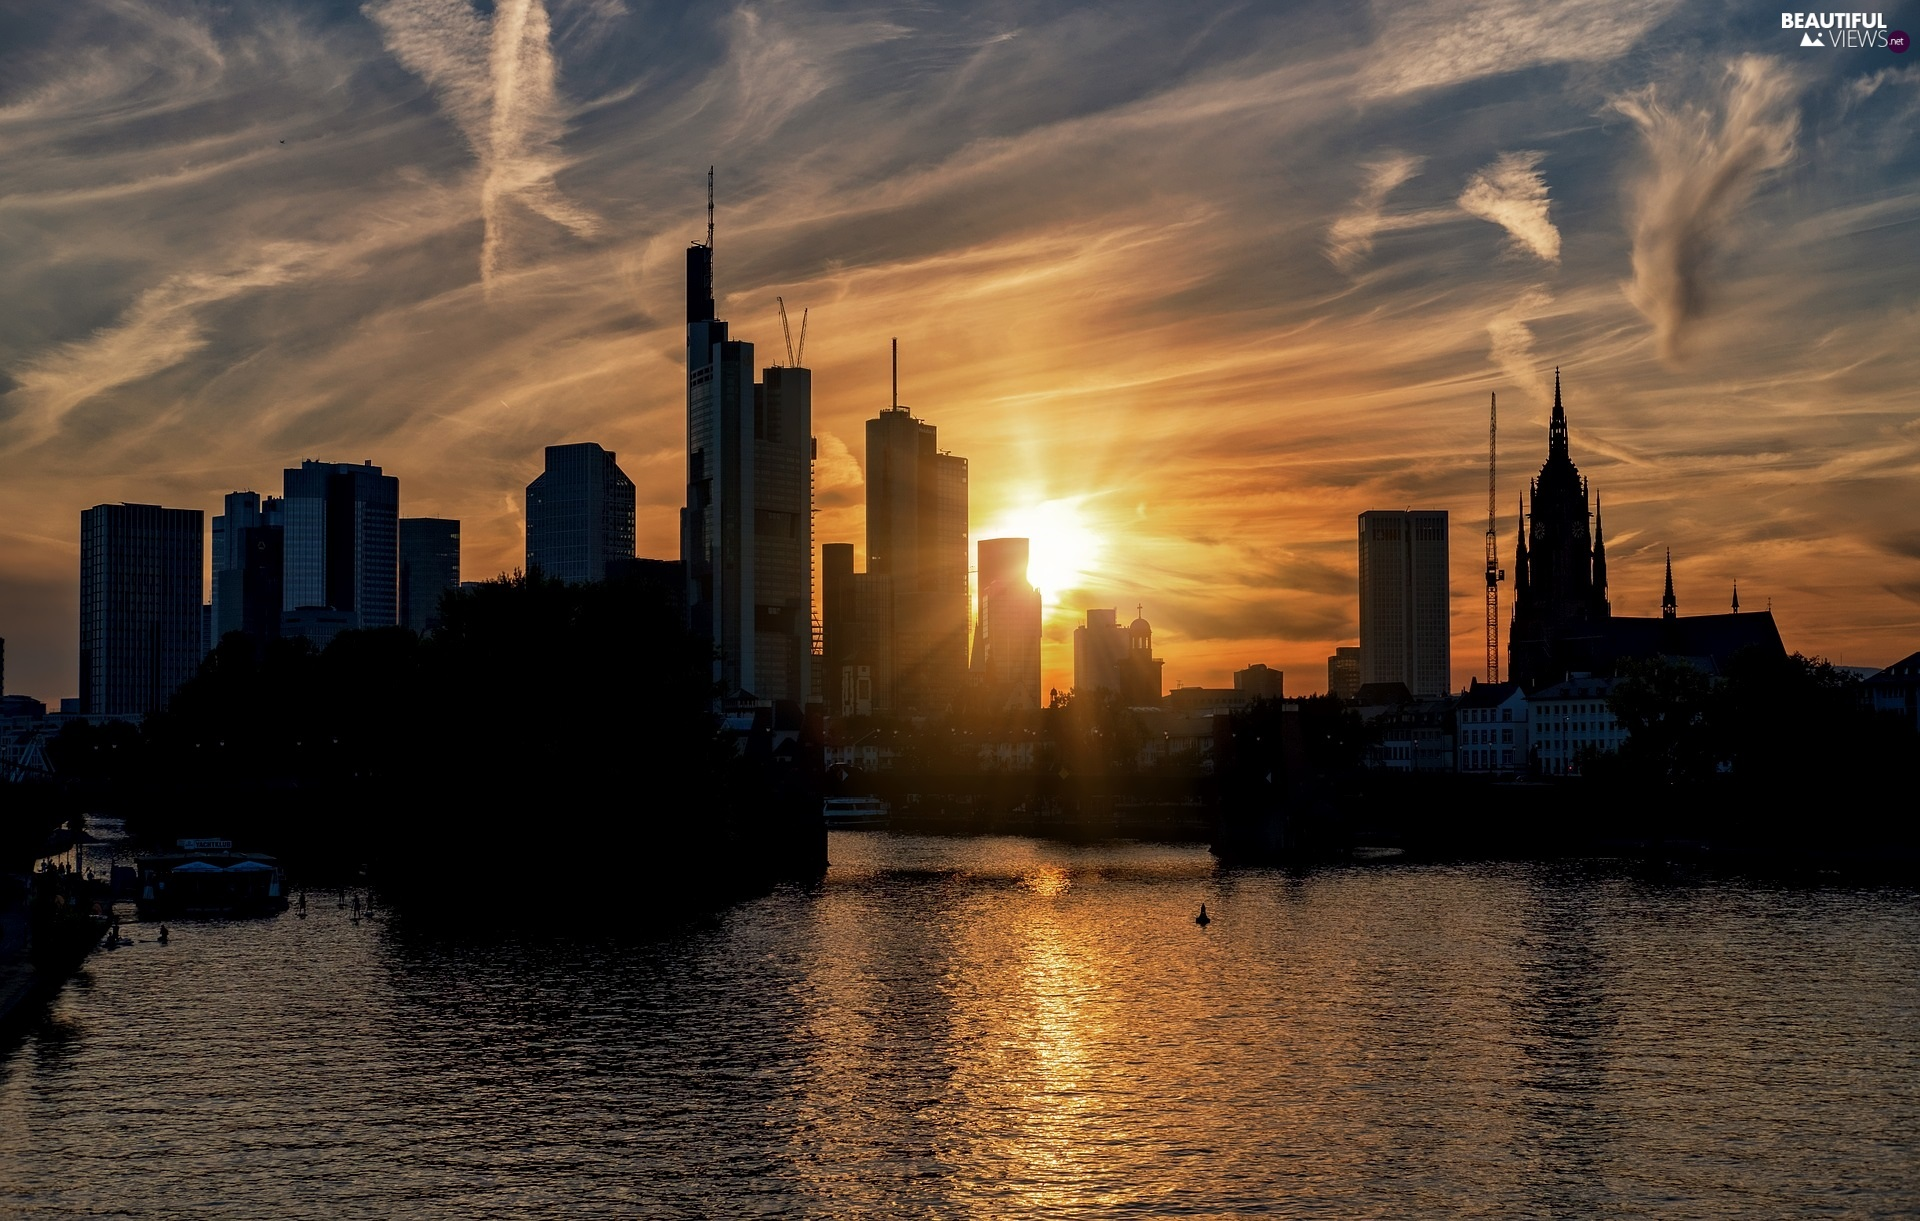 Great Sunsets, Houses, Frankfurt am Main, Germany, River Men, skyscrapers